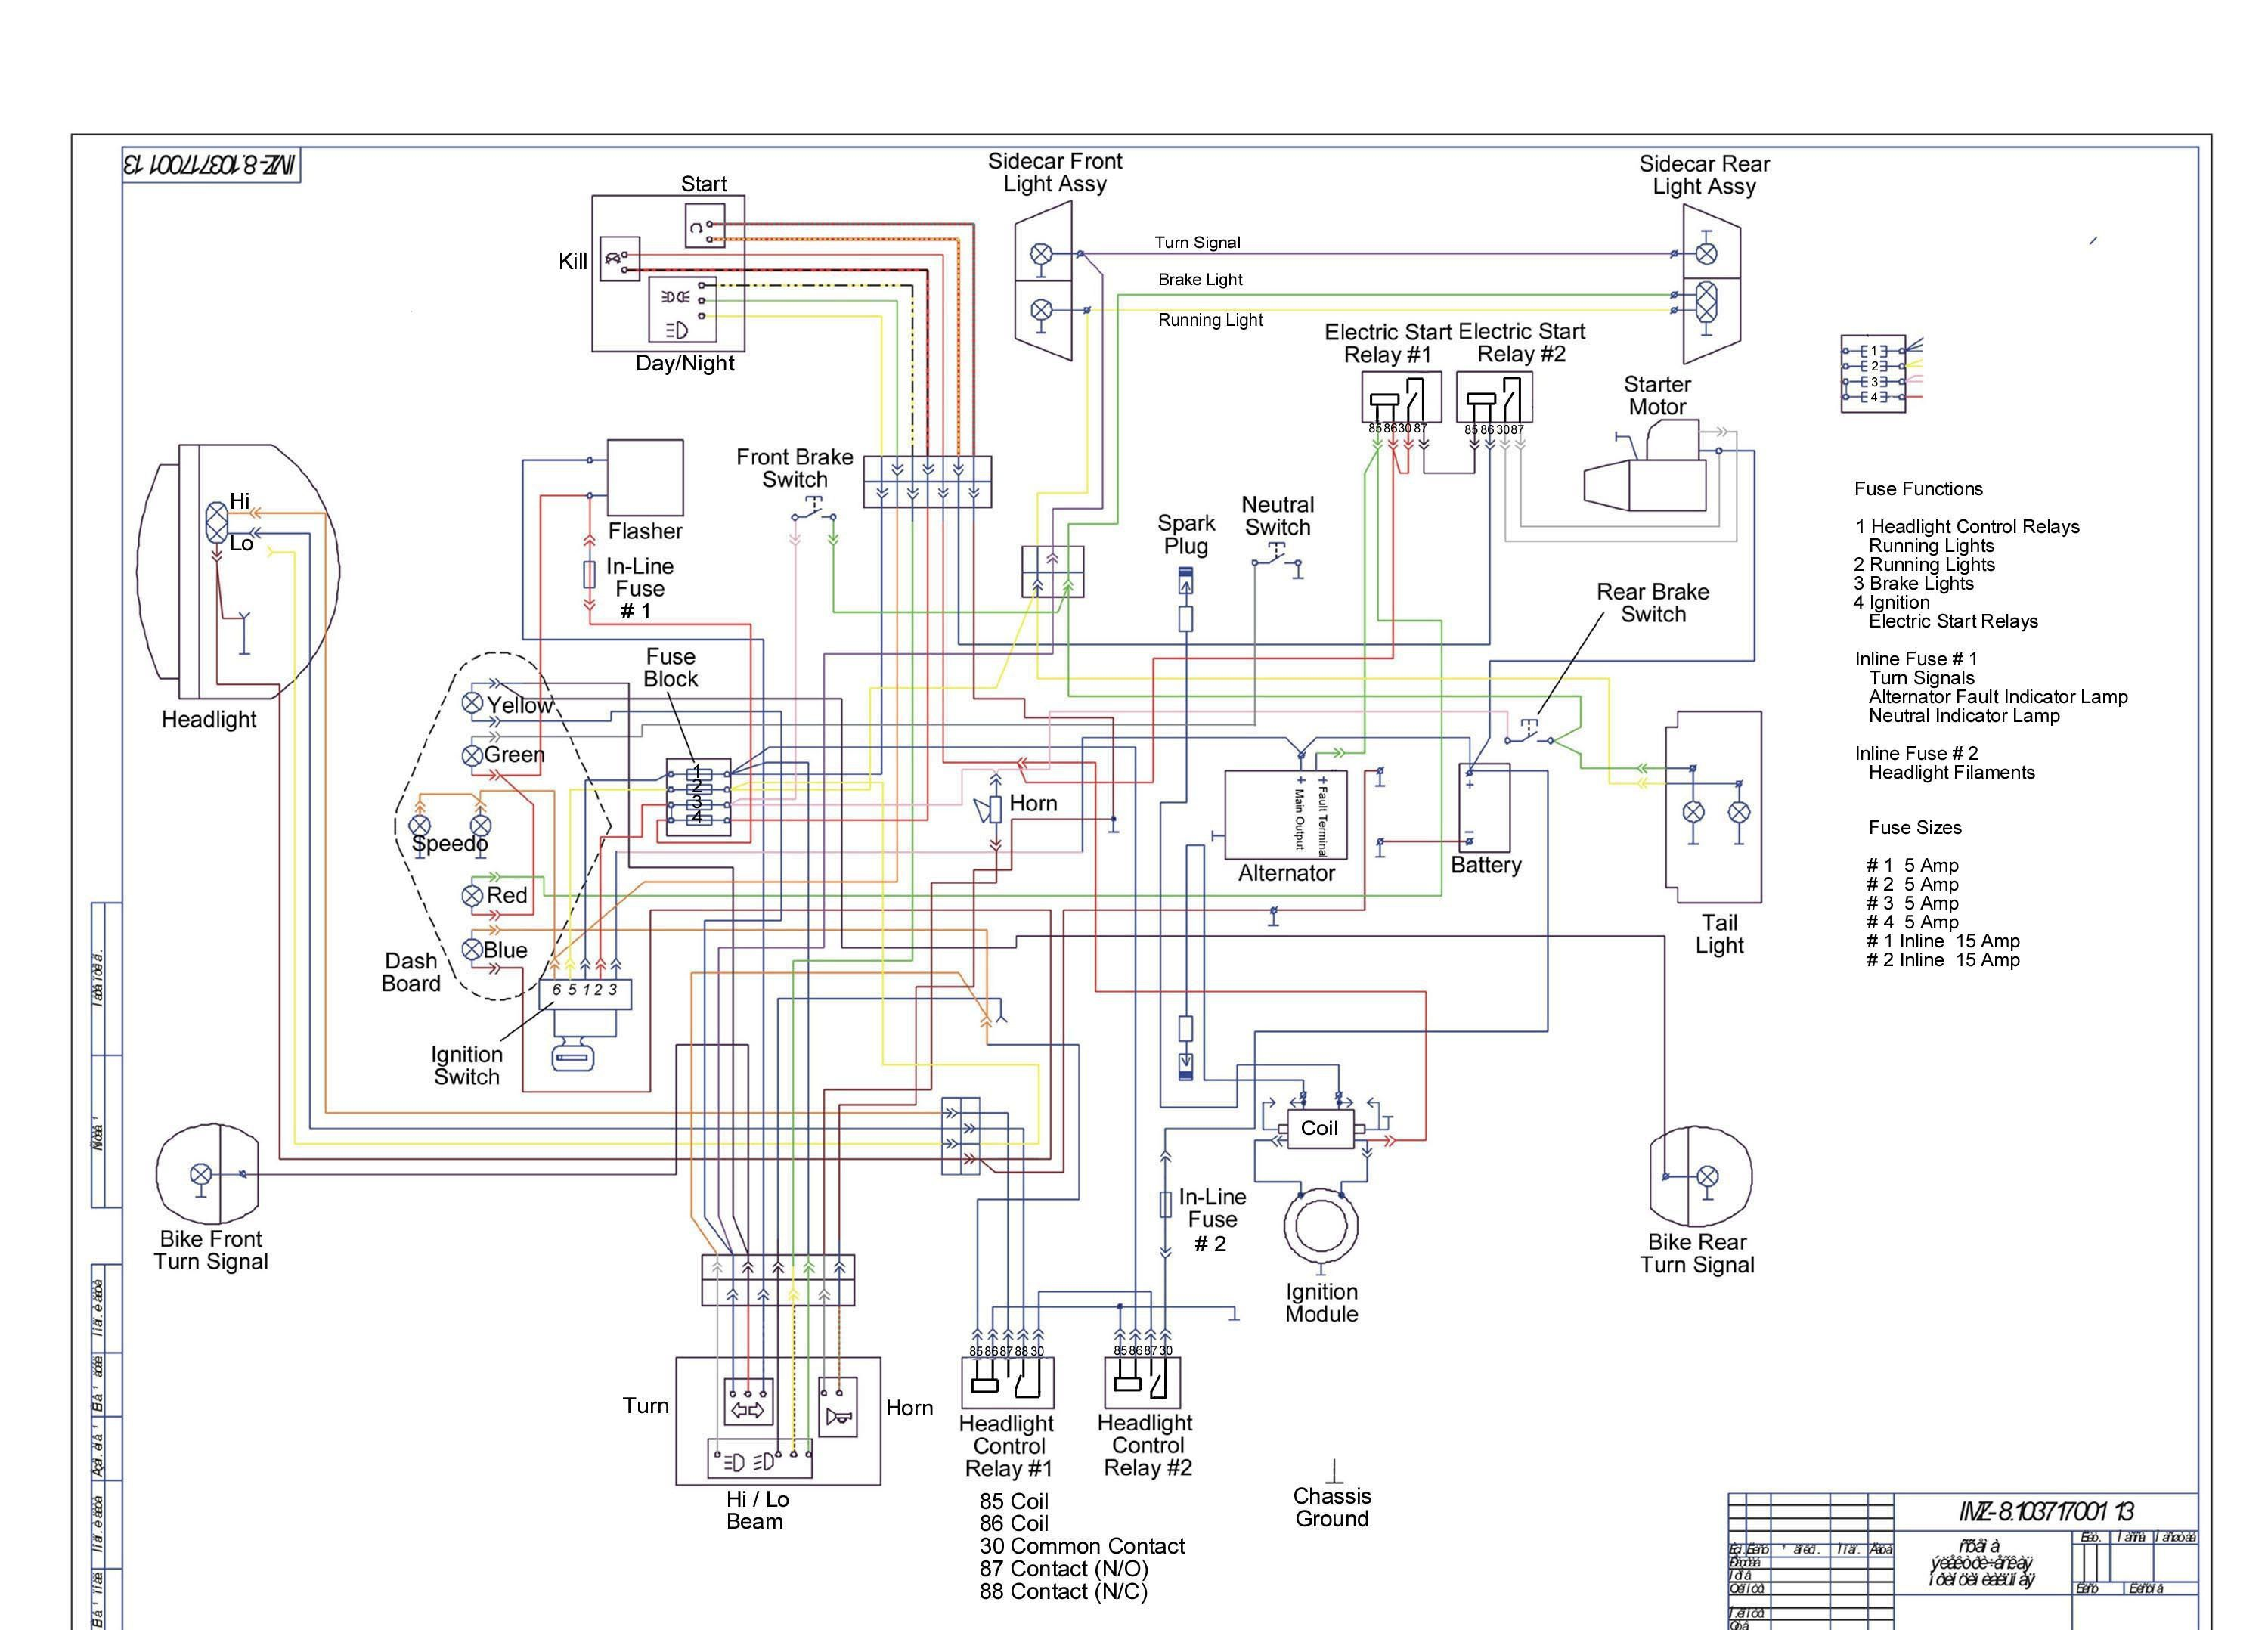 1958 Ford F100 Wiring Diagram Rear Brakes Ford Explorer Front Brakes